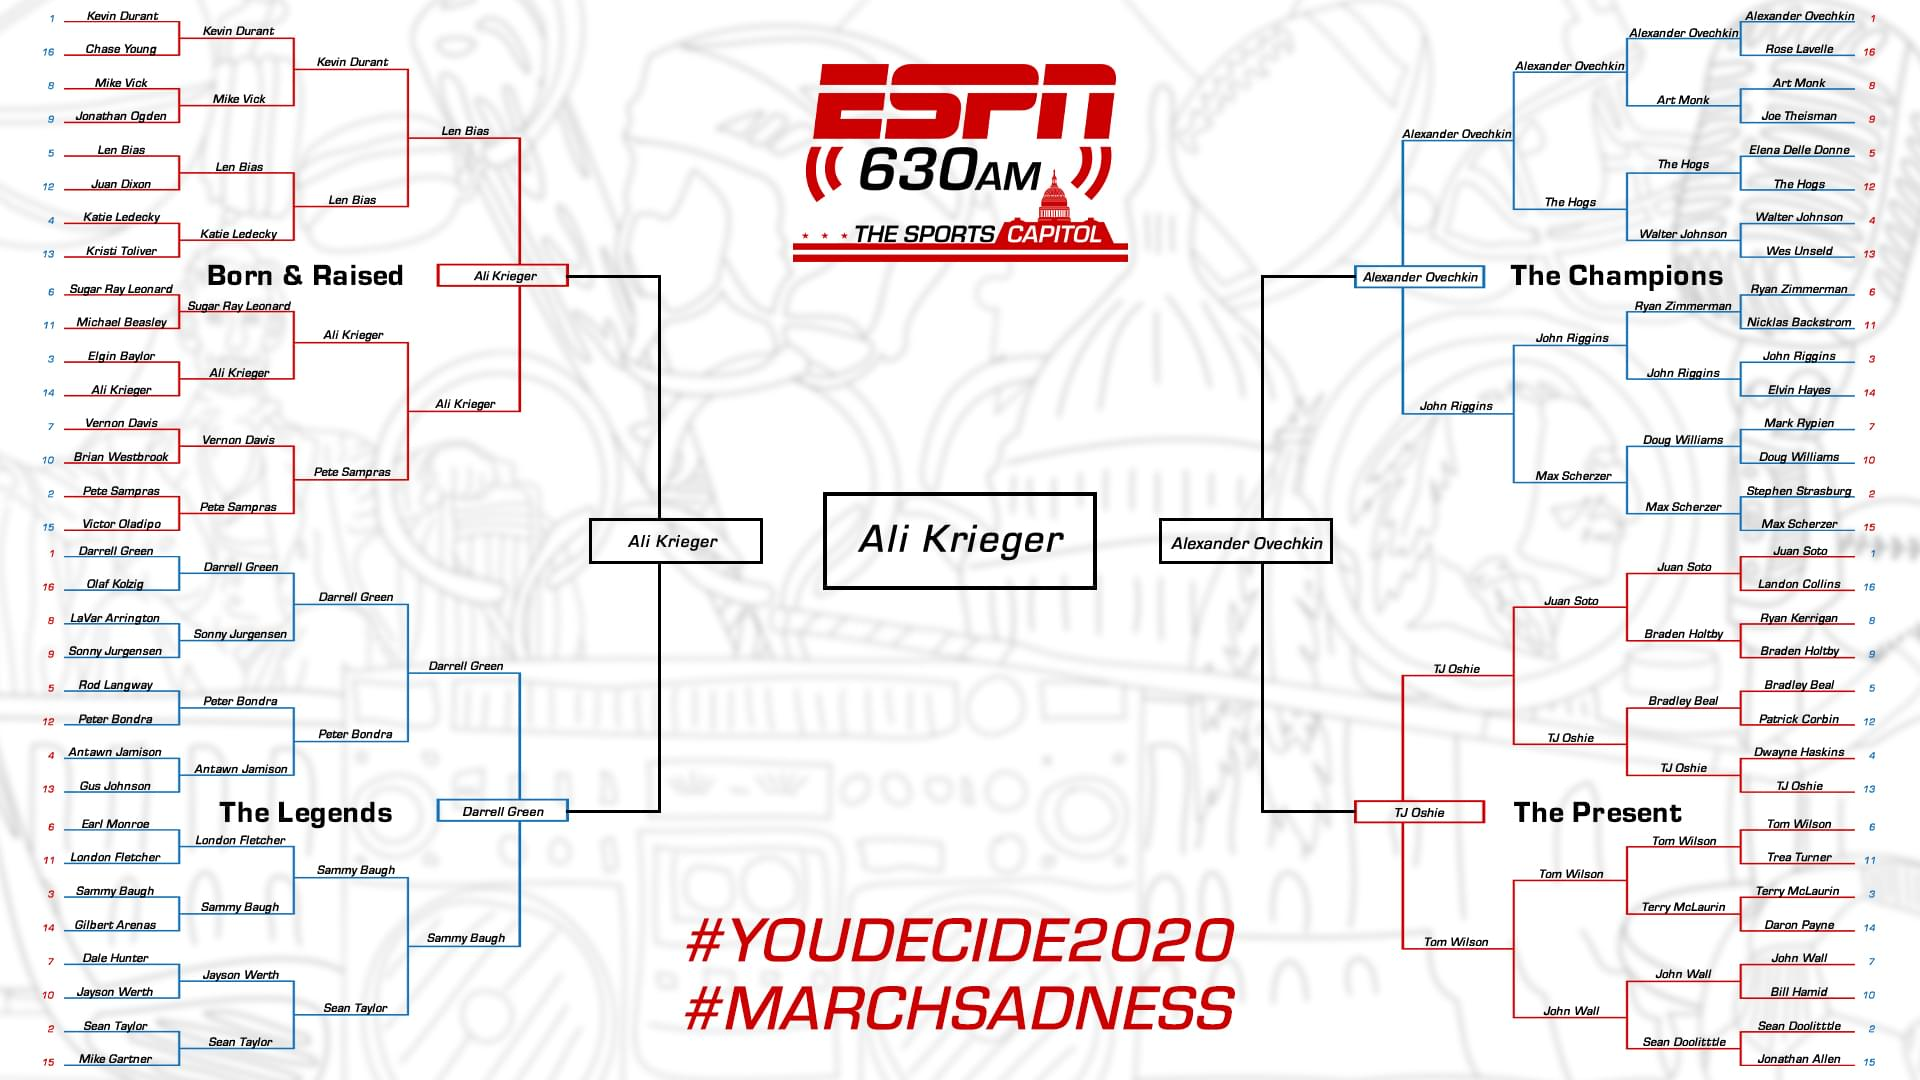 Ali20Krieger20Winner Full20Bracket